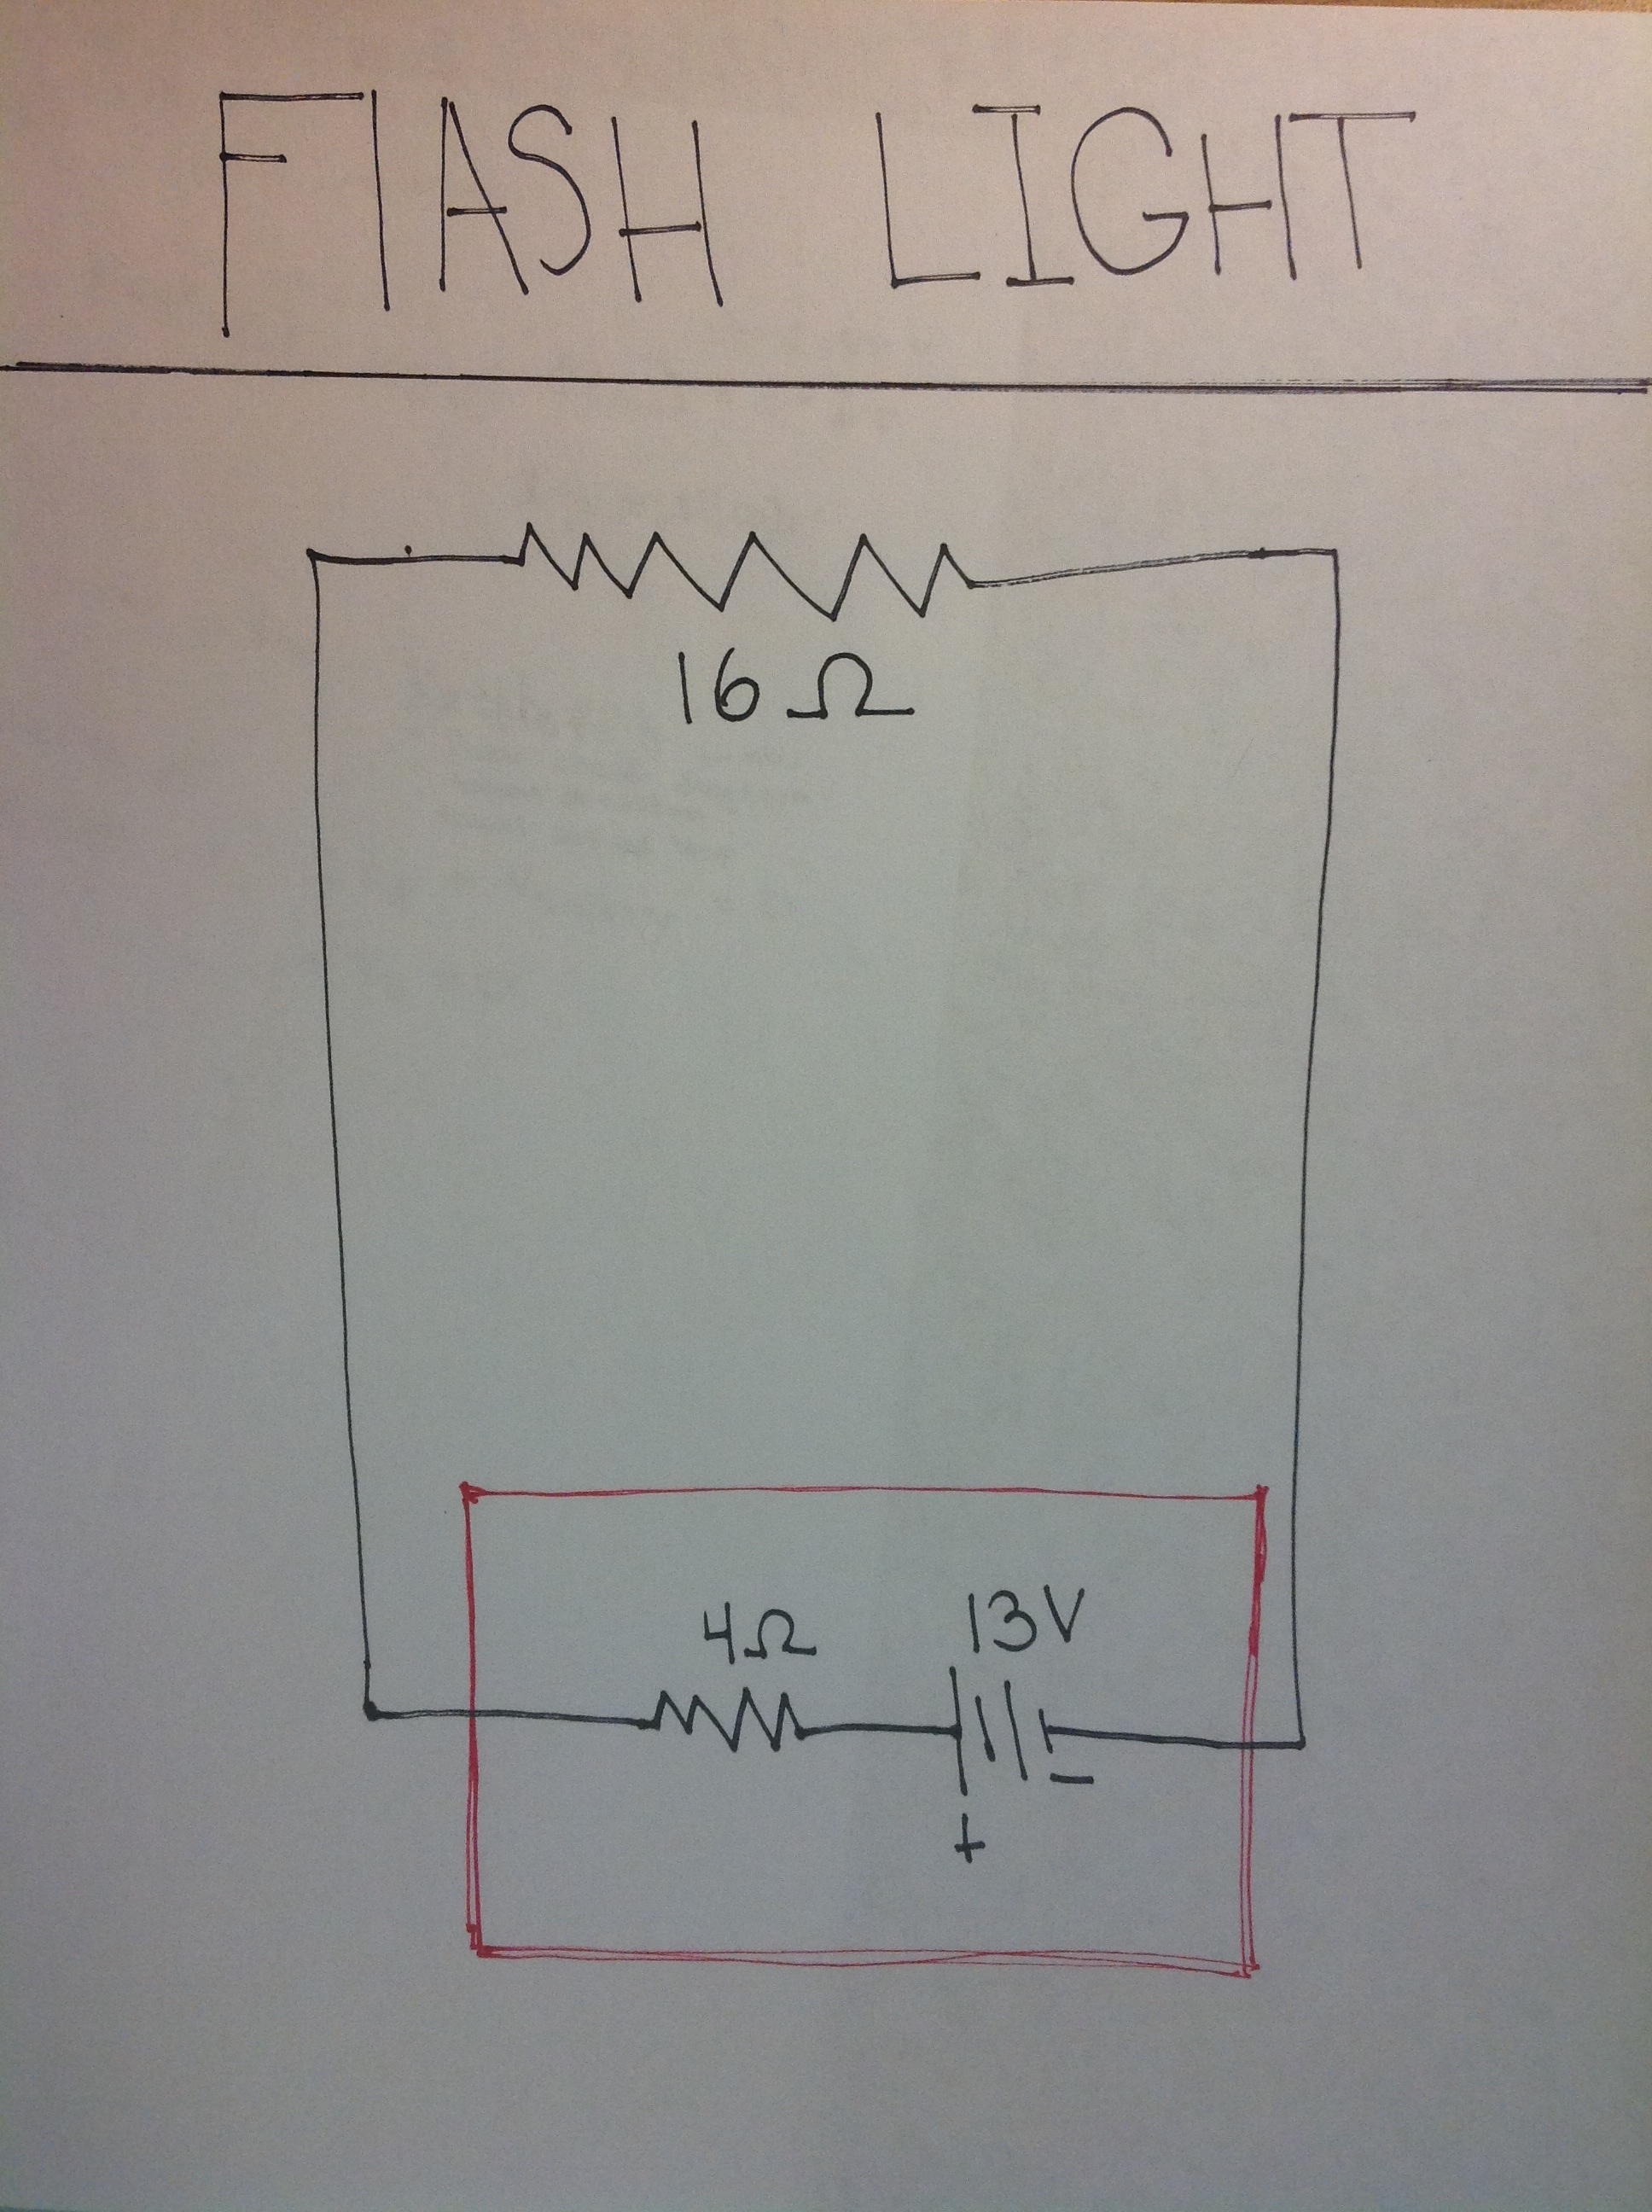 Andreas07 The Simple Solution Template Parallel Circuits Flash Light Circuit